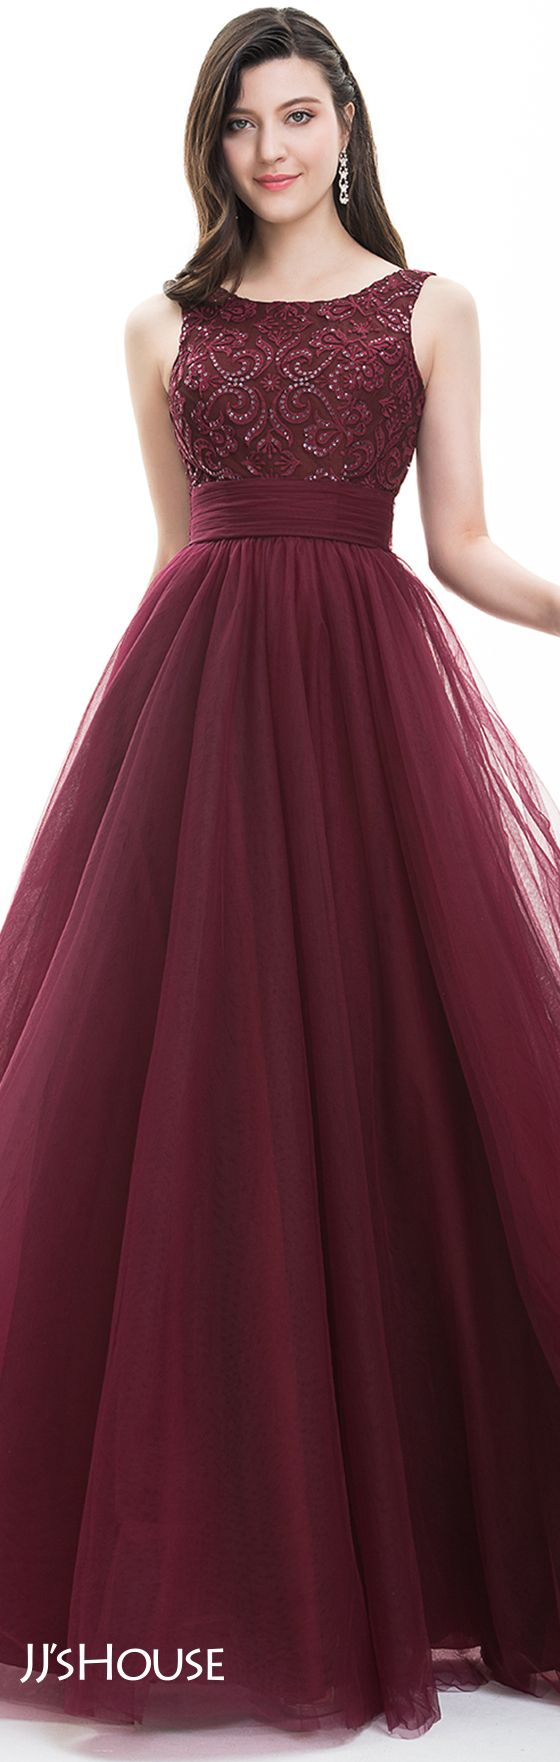 Jjshouse prom cosas para ponerme pinterest prom gowns and robe